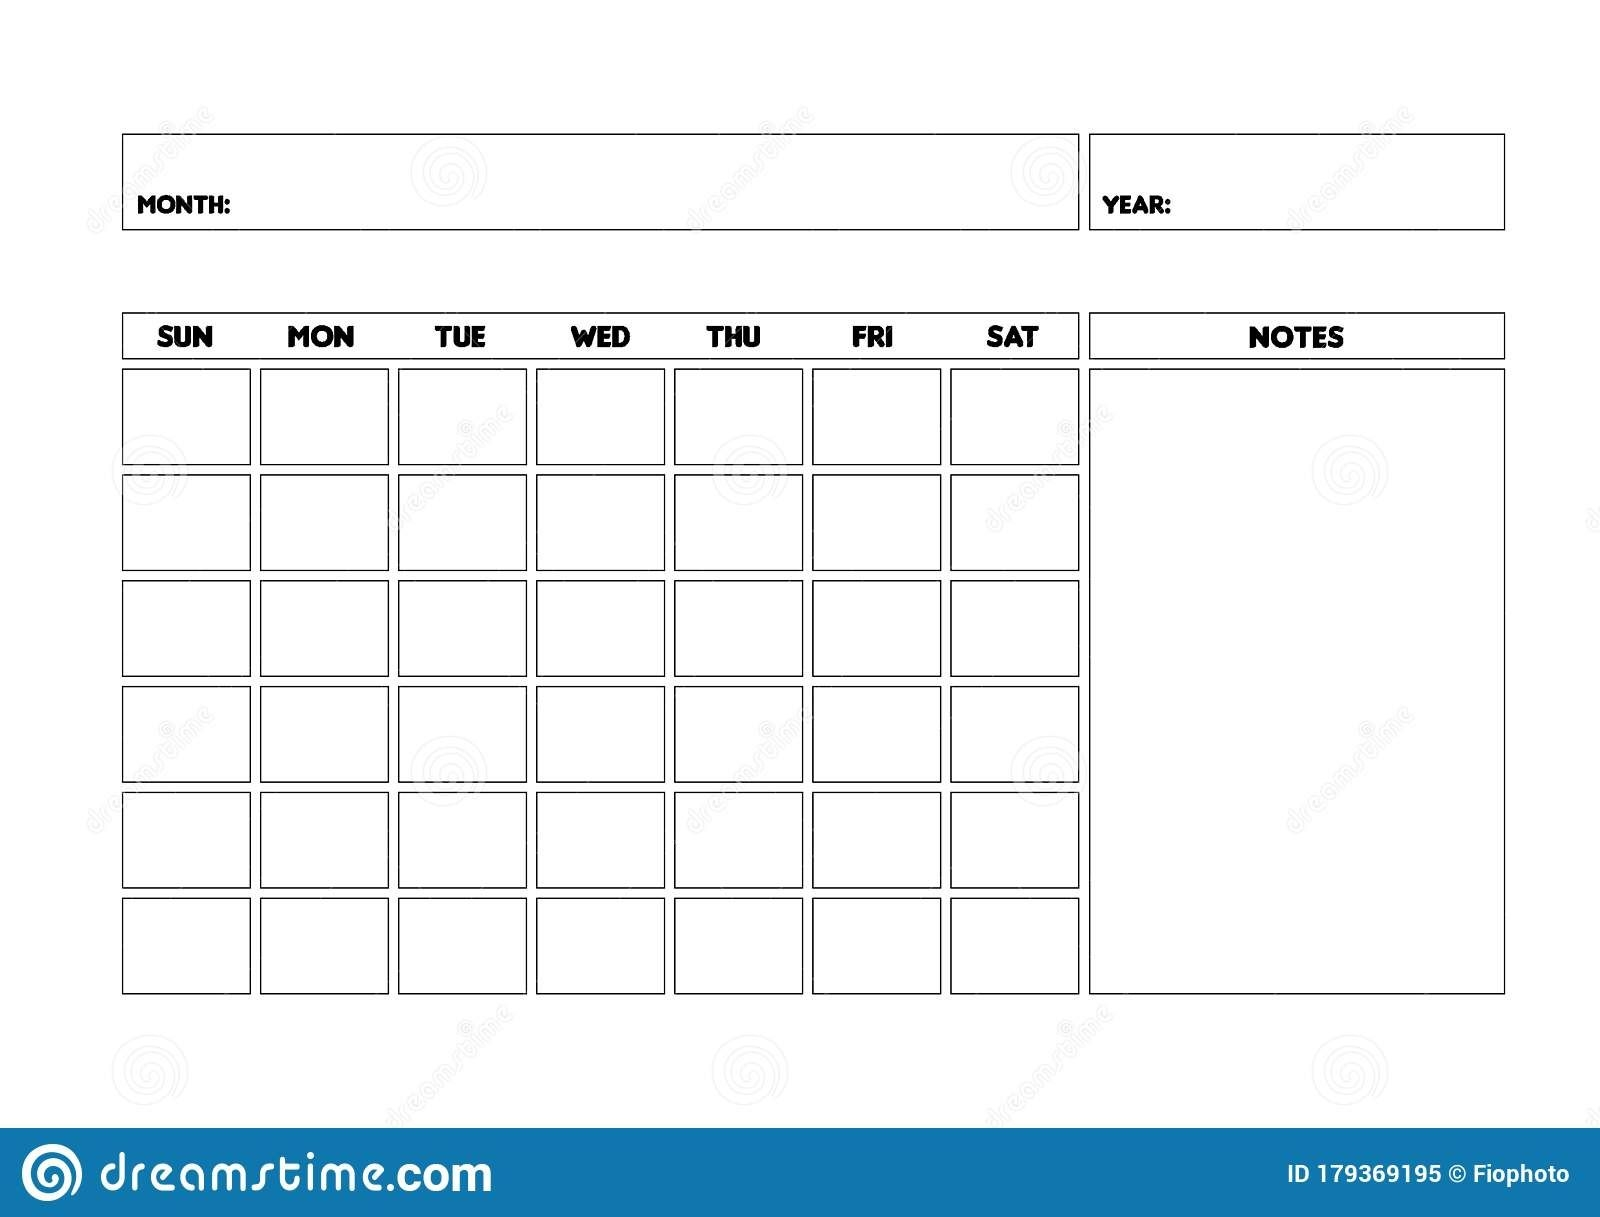 Blank Monthly Calendar Template, Undated Monthly Planner